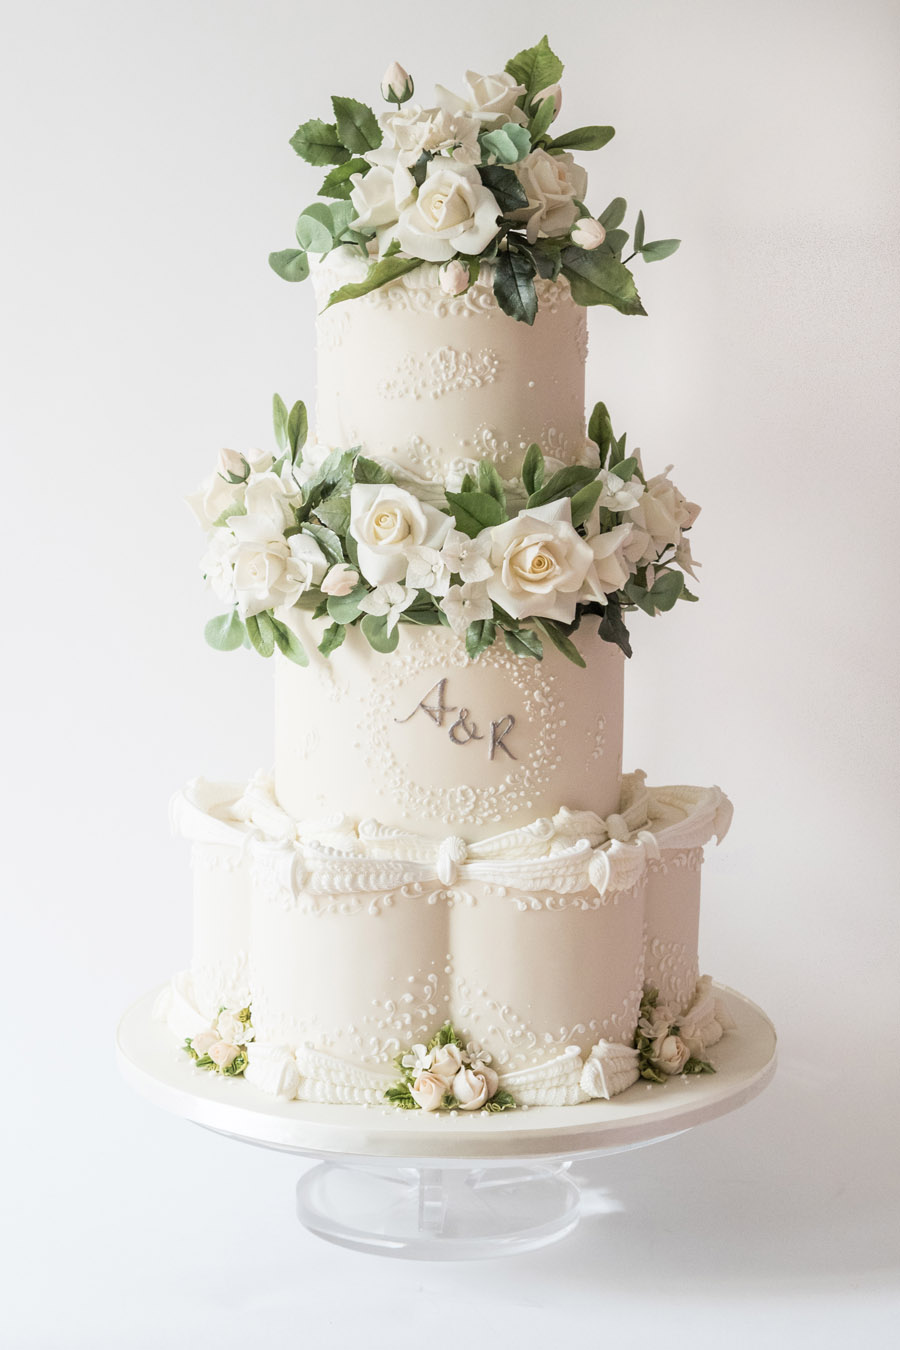 Beautiful wedding cakes by The Frostery - trends and ideas for 2019 (1)